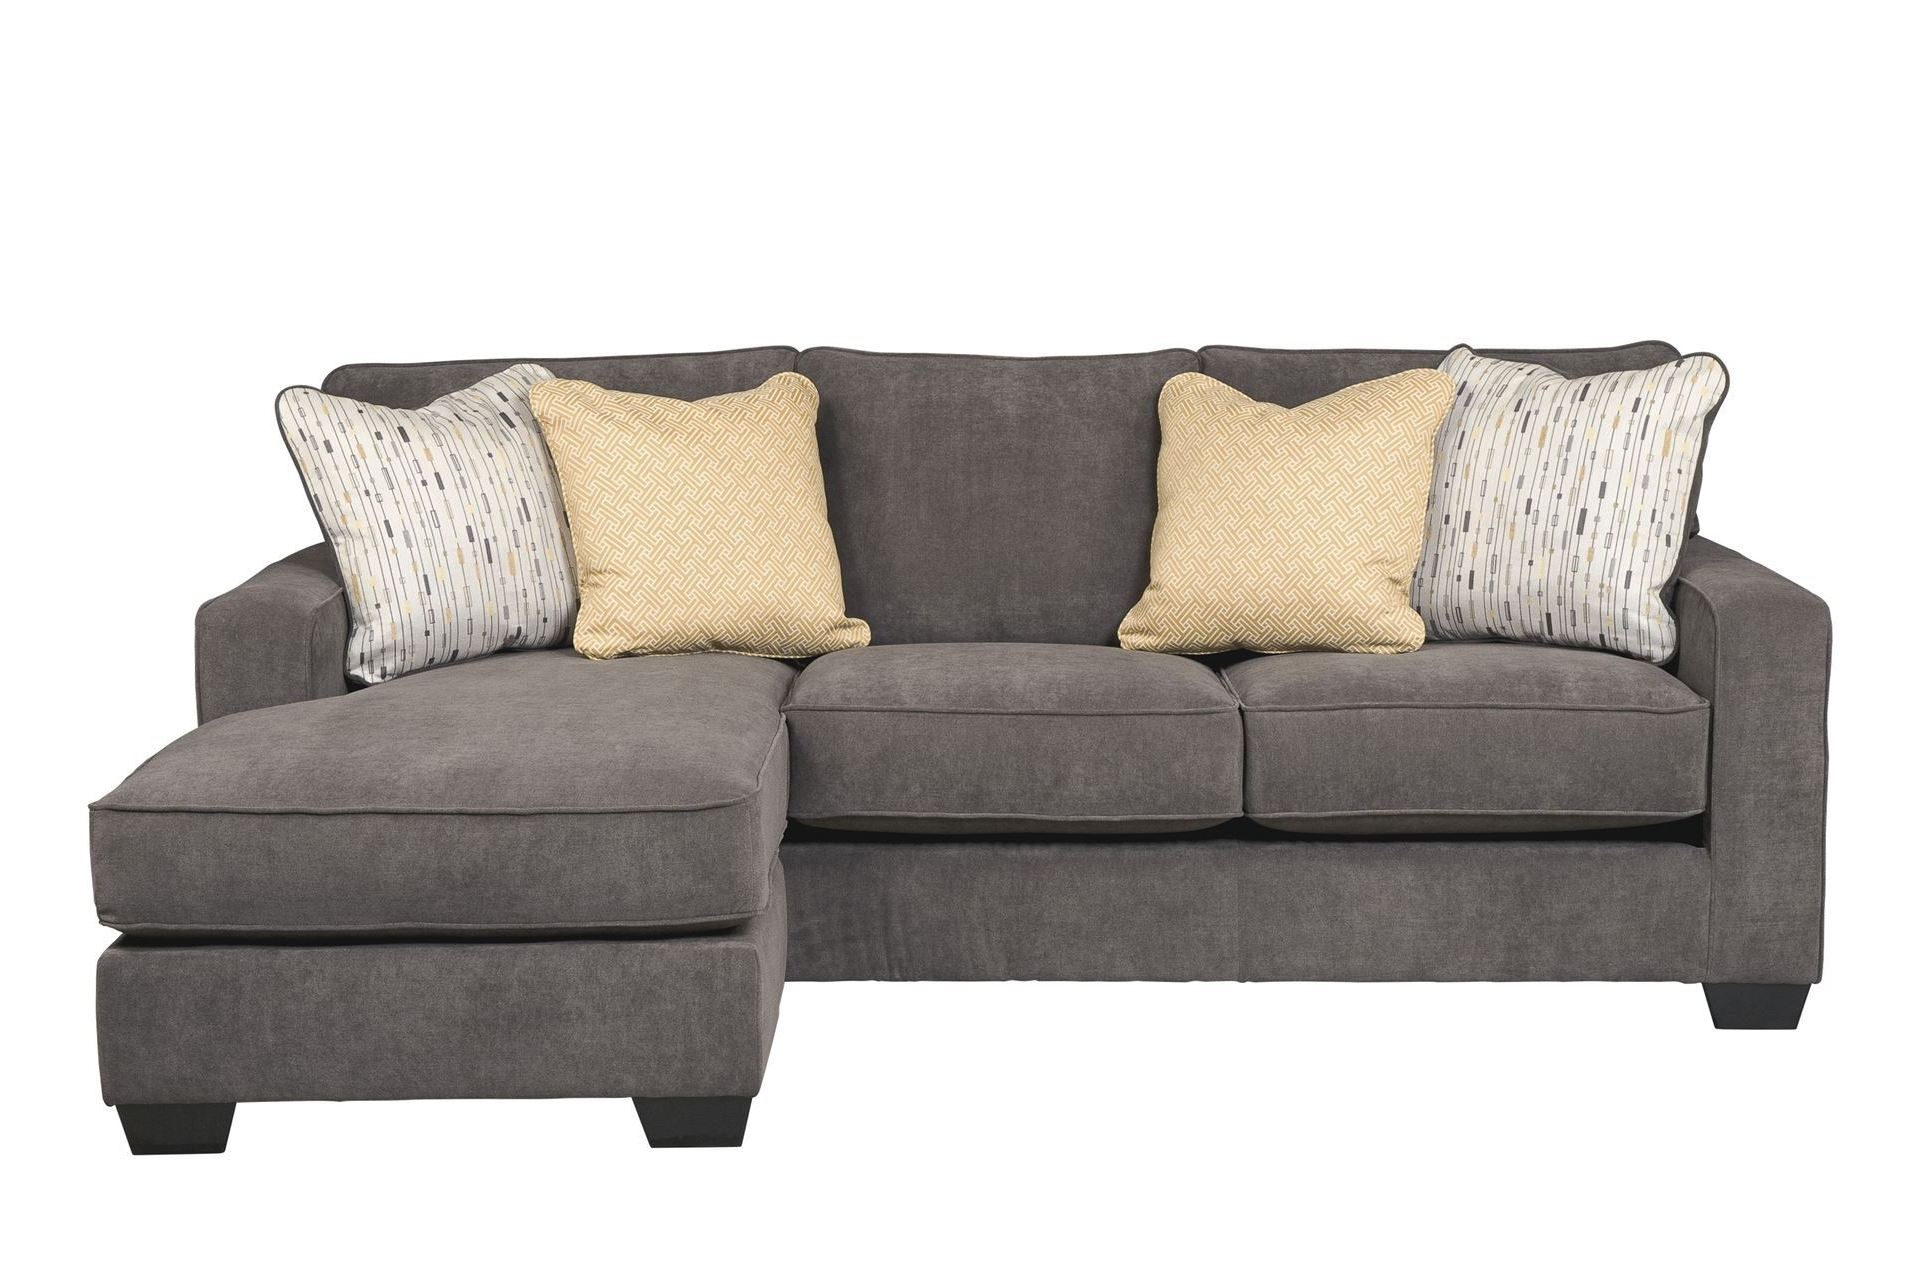 Latest The Ideal Solution For Small Spaces – Sectional With Sleeper Sofa With Regard To Small Loveseats With Chaise (View 6 of 15)